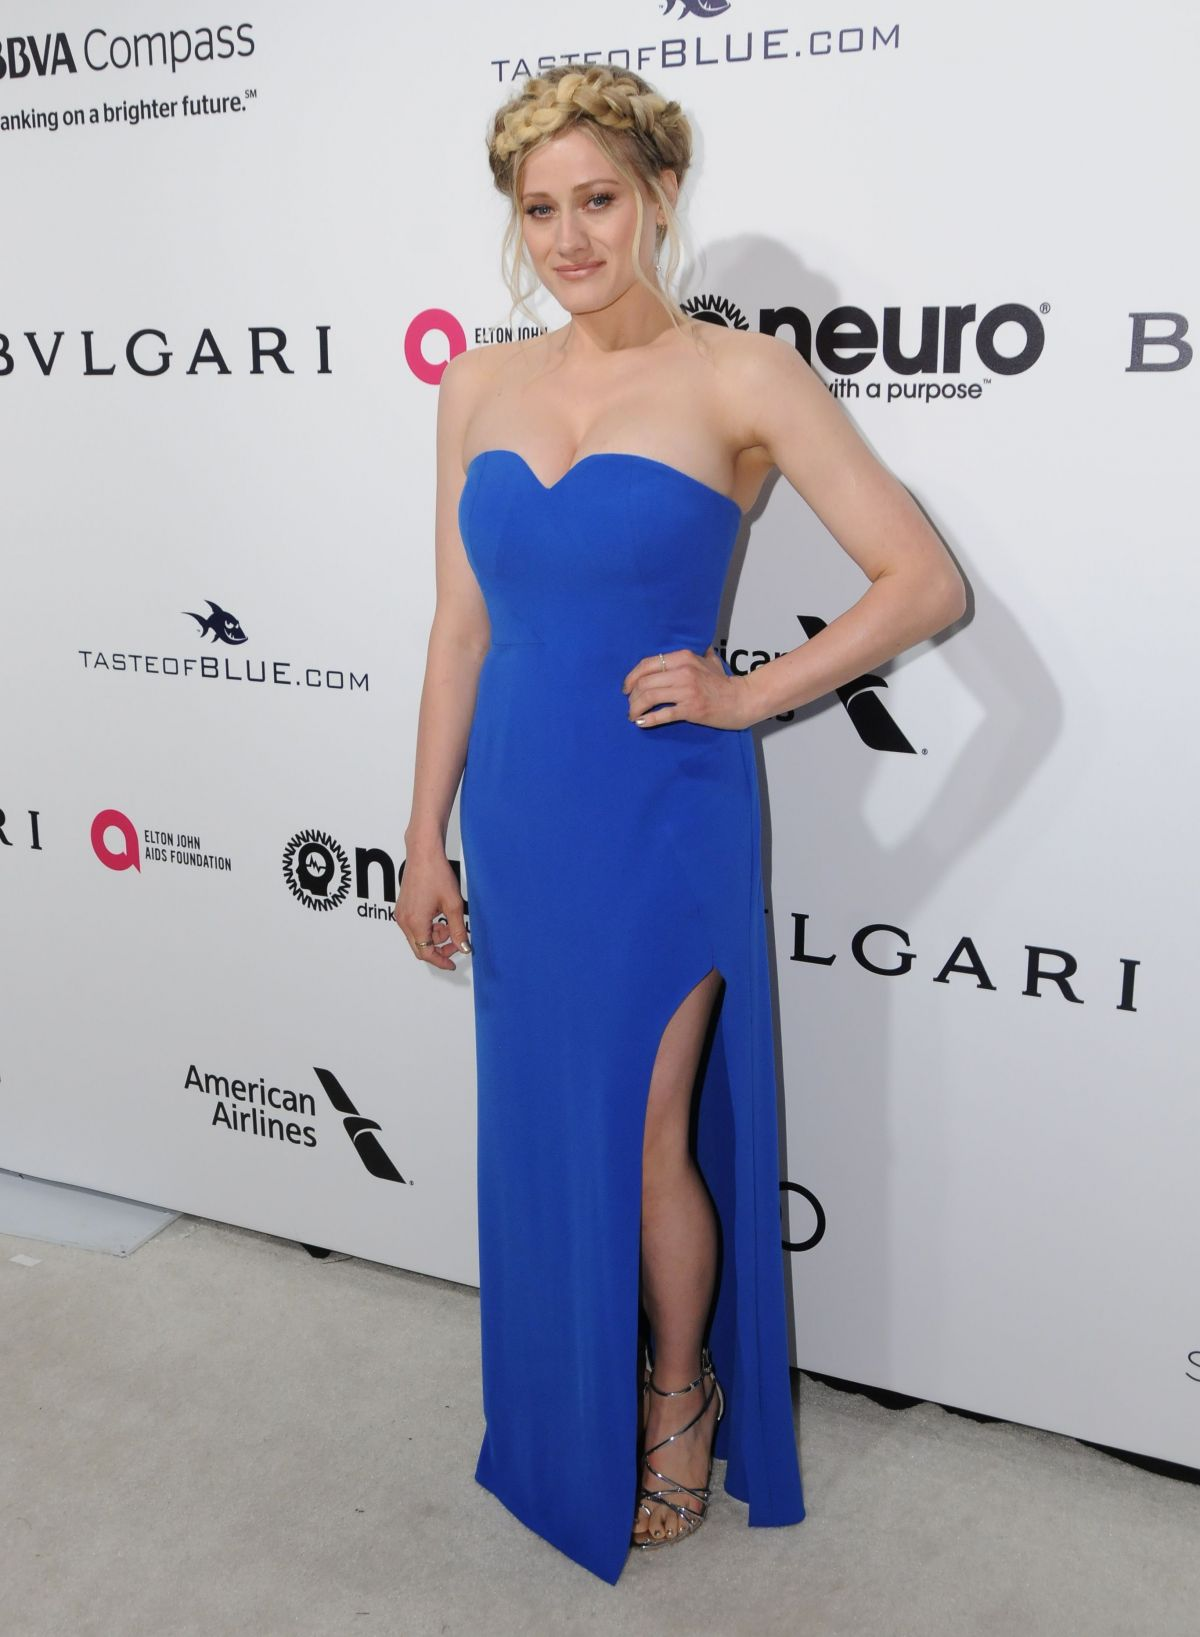 OLIVIA TAYLOR DUDLEY at 25th Annual Elton John Aids Foundation's Oscar Viewing Party in Hollywood 02/26/2017